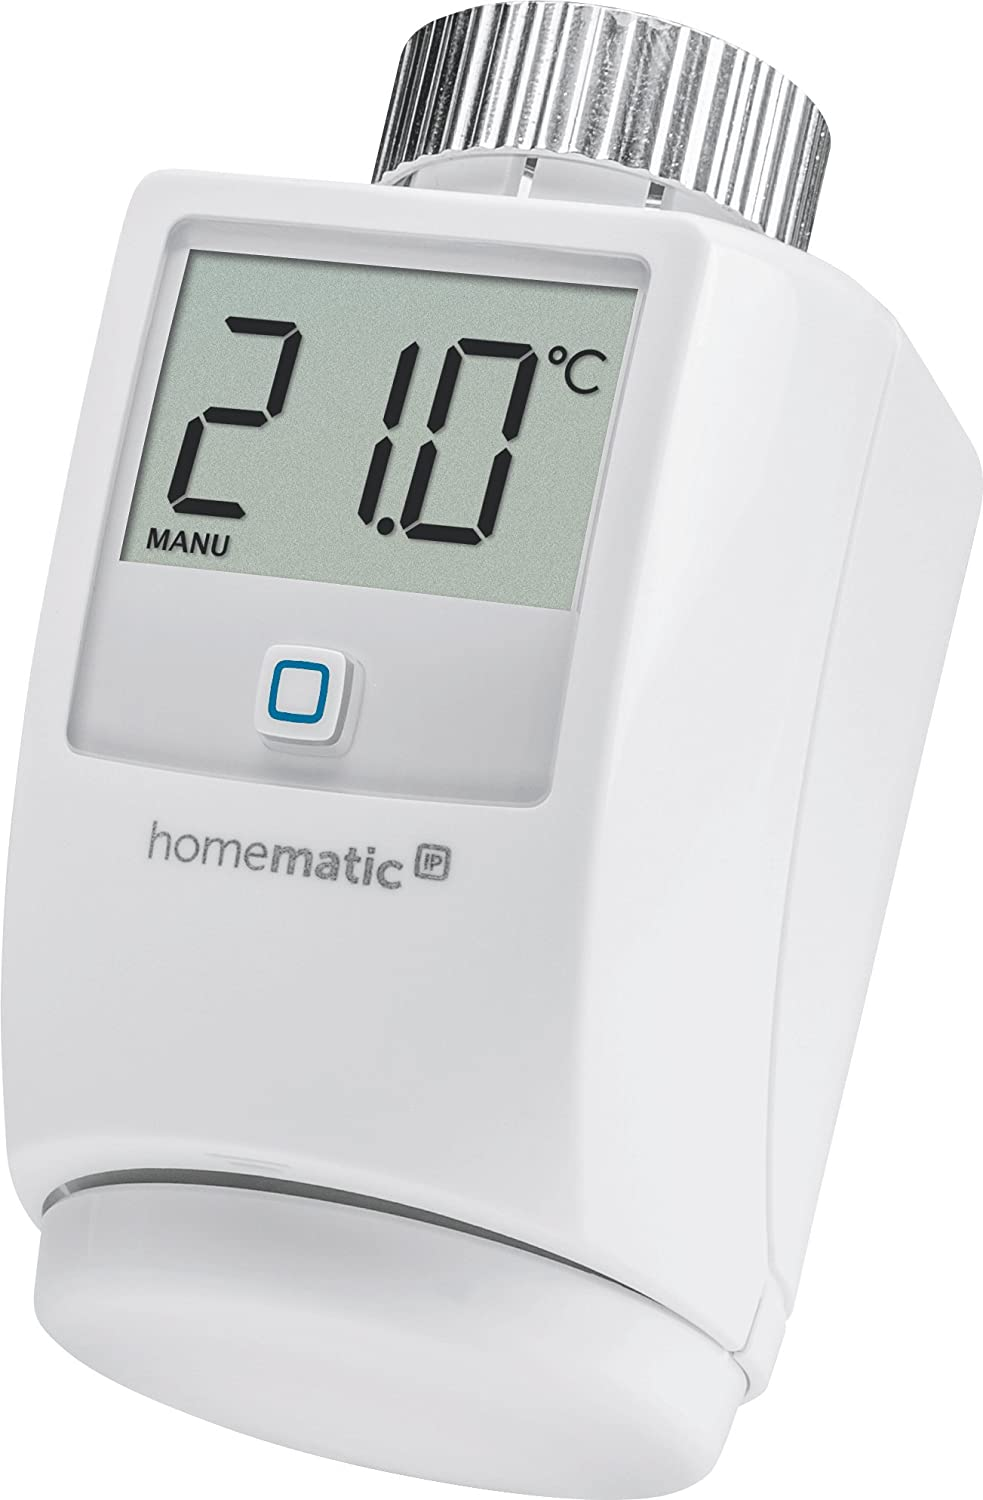 heizk rperthermostat test alle modelle f r 2018 im test vergleich. Black Bedroom Furniture Sets. Home Design Ideas